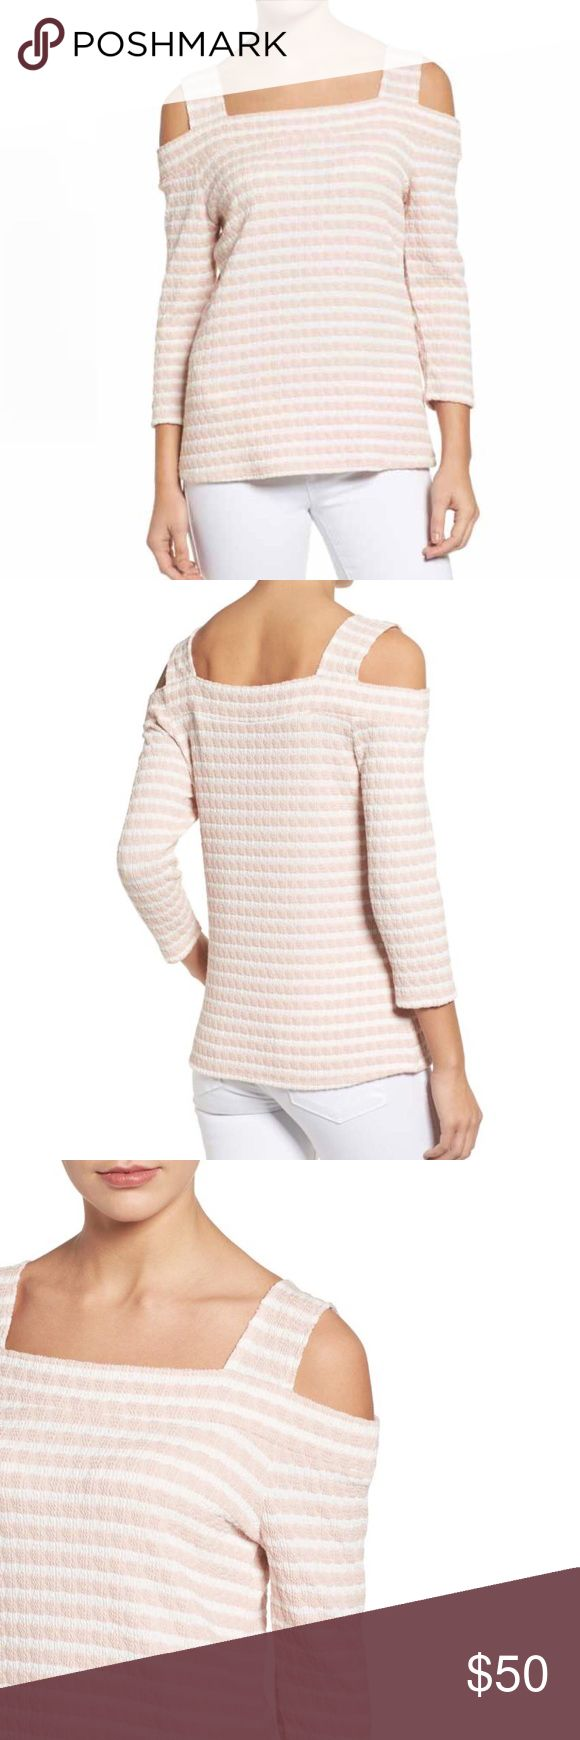 Kut from the Kloth•Stitch Fix Cold Shoulder Stripe Super cute blouse by Kut from the Kloth from Stitch Fix.  Puckered texture softens the crisply striped patterning of a stretch-knit top with trendy cold-shoulder styling. —size Large, excellent preloved condition  —Square neck —Three-quarter sleeves —51% polyester, 47% cotton, 2% spandex —Hand wash cold, line dry Kut from the Kloth Tops Blouses